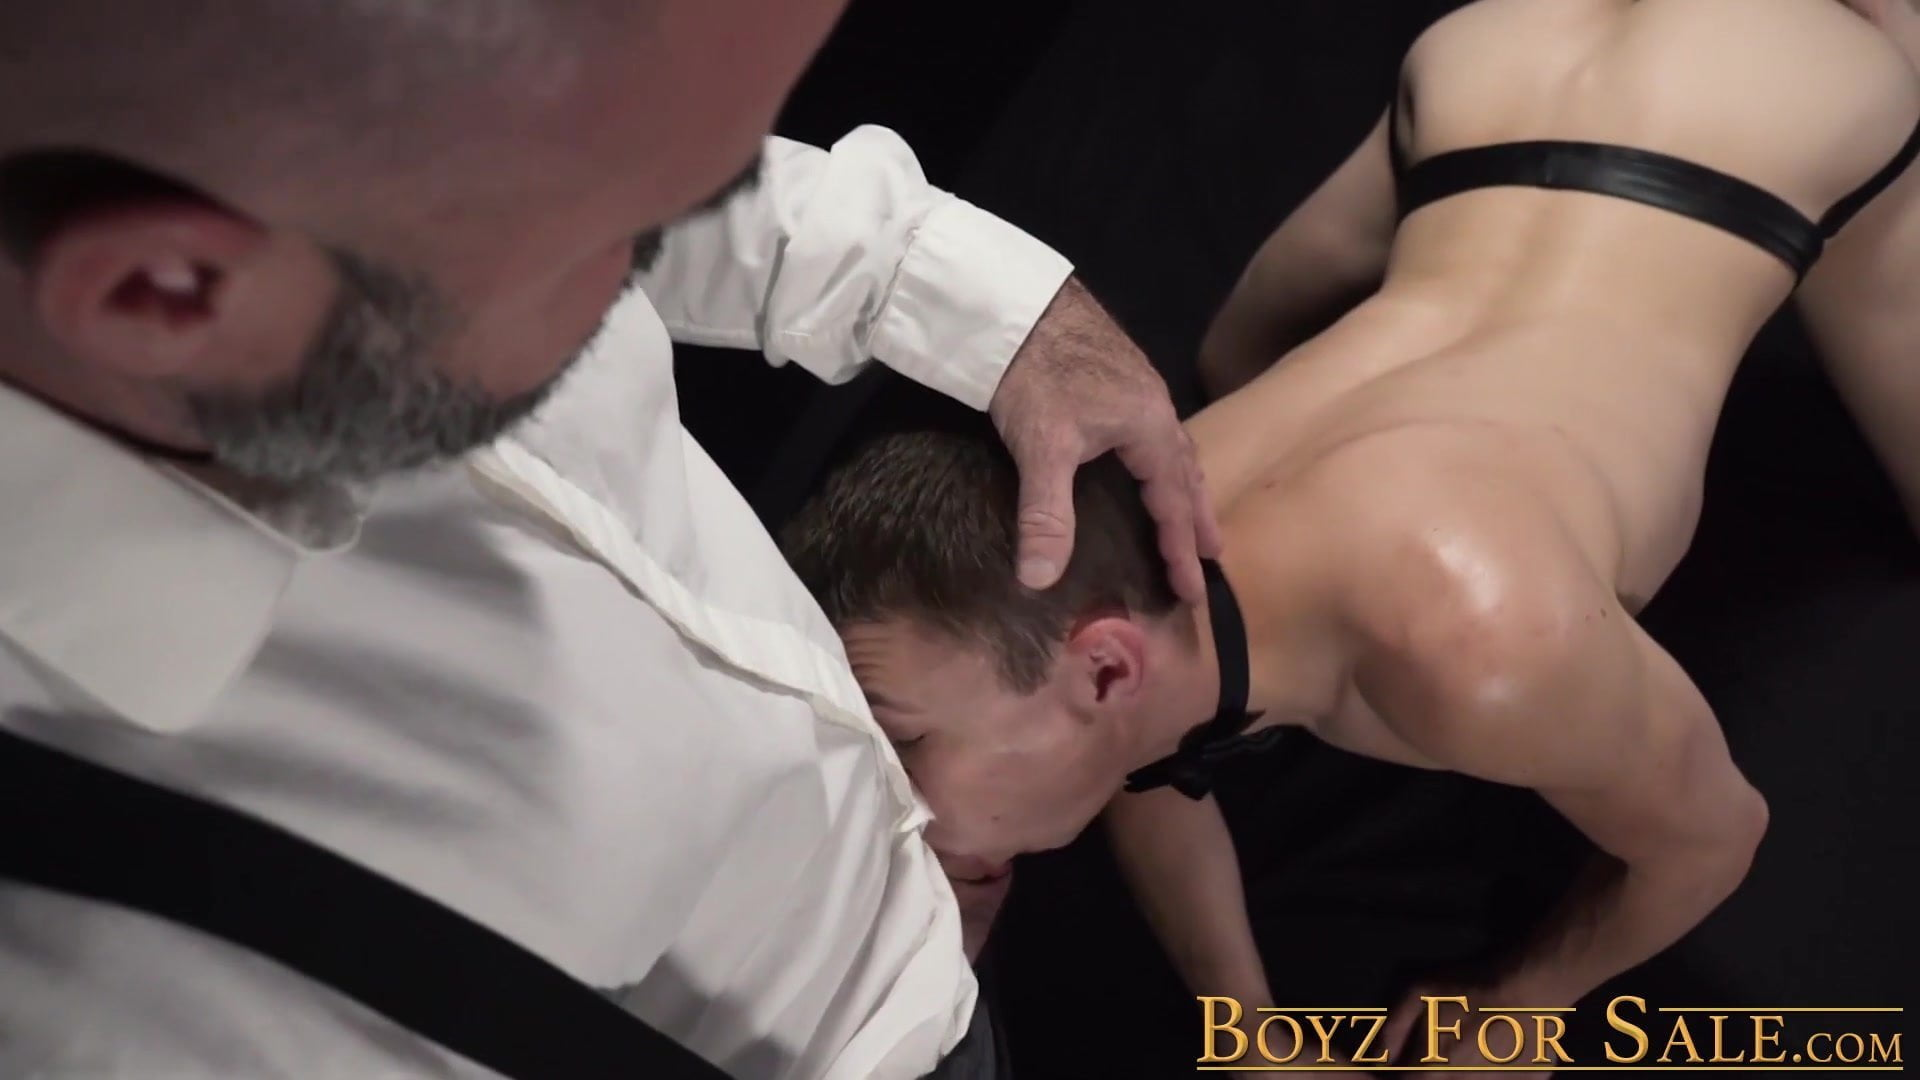 Skinny slave boy dominated and barebacked by hunky daddy